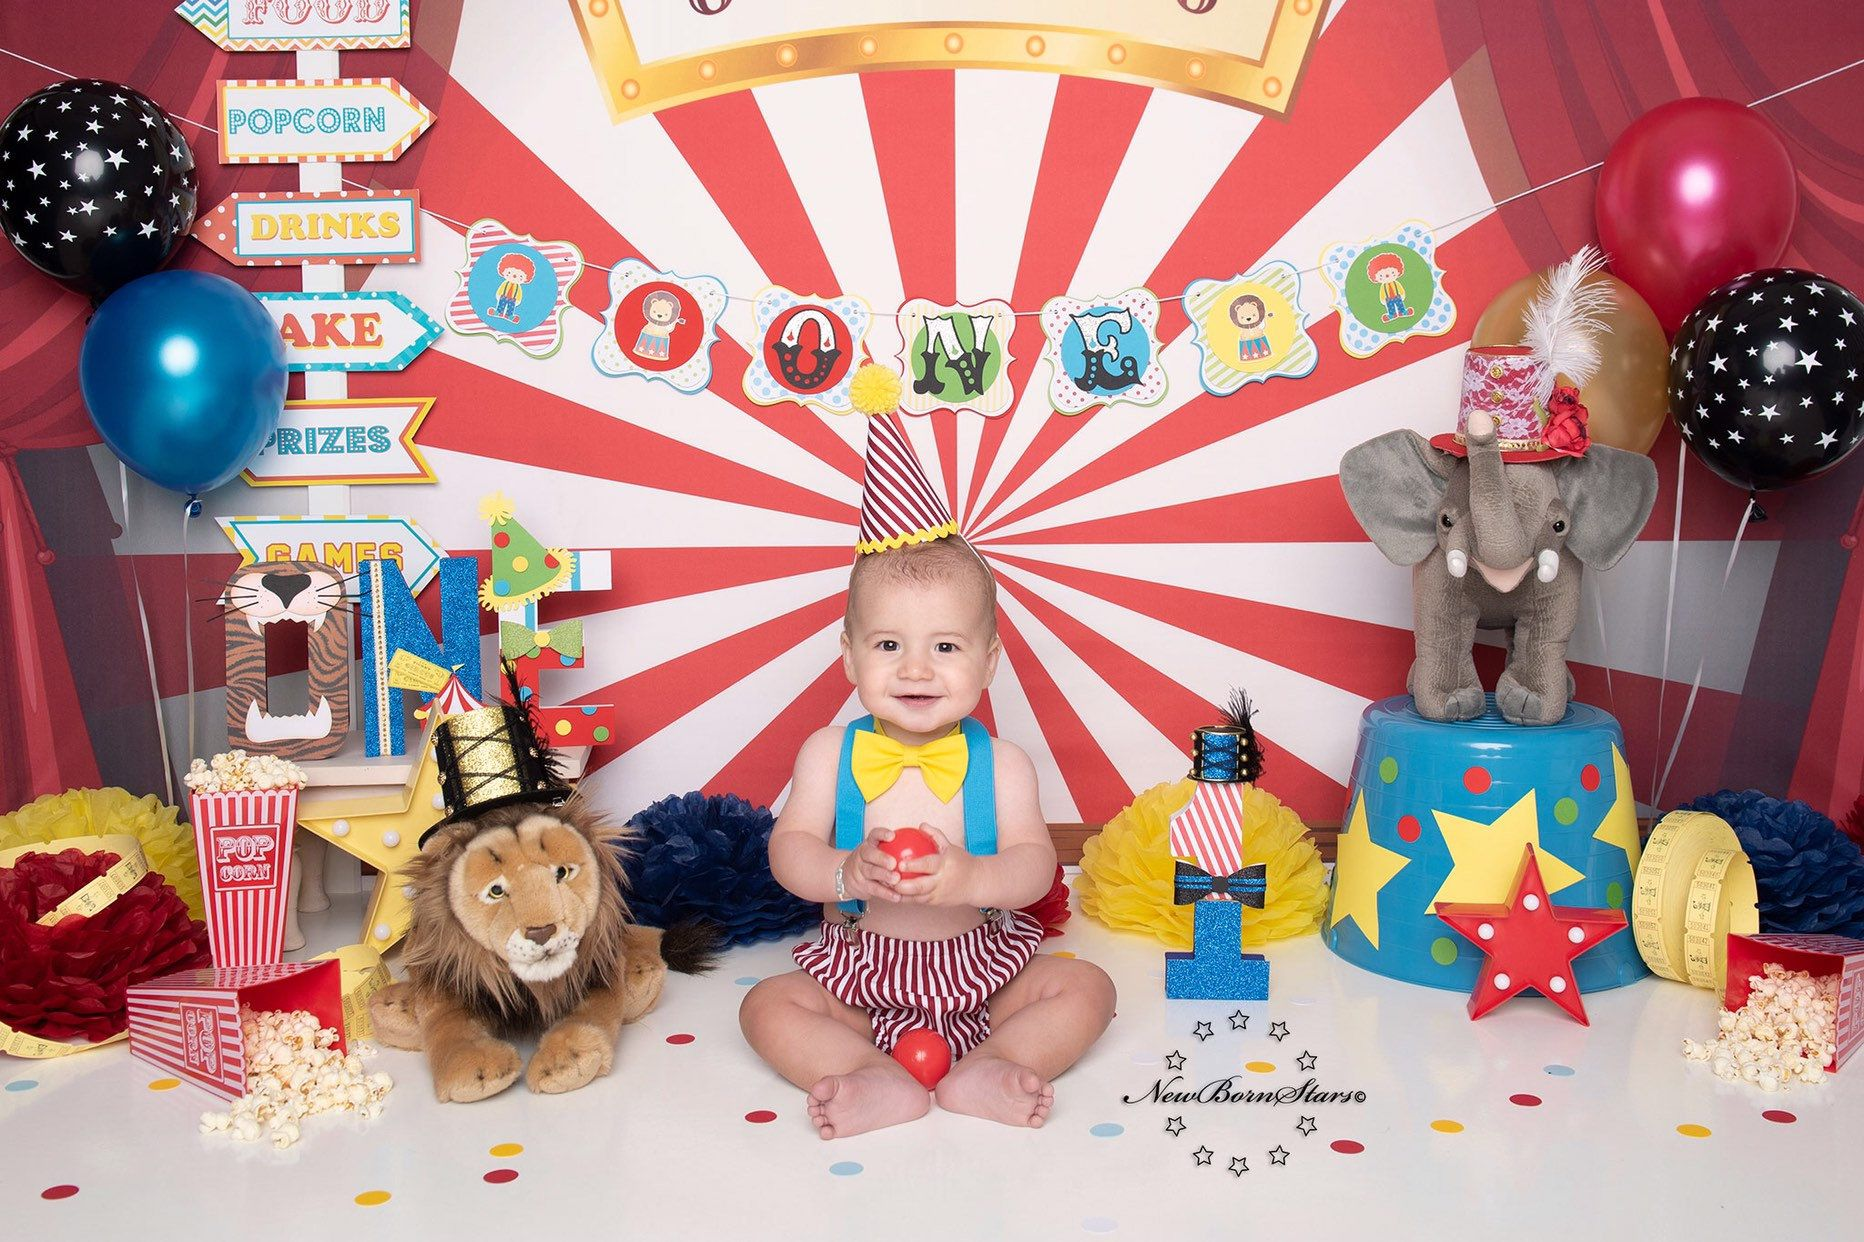 Circus cake smash outfit boy birthday outfit 1 2 3 or 4